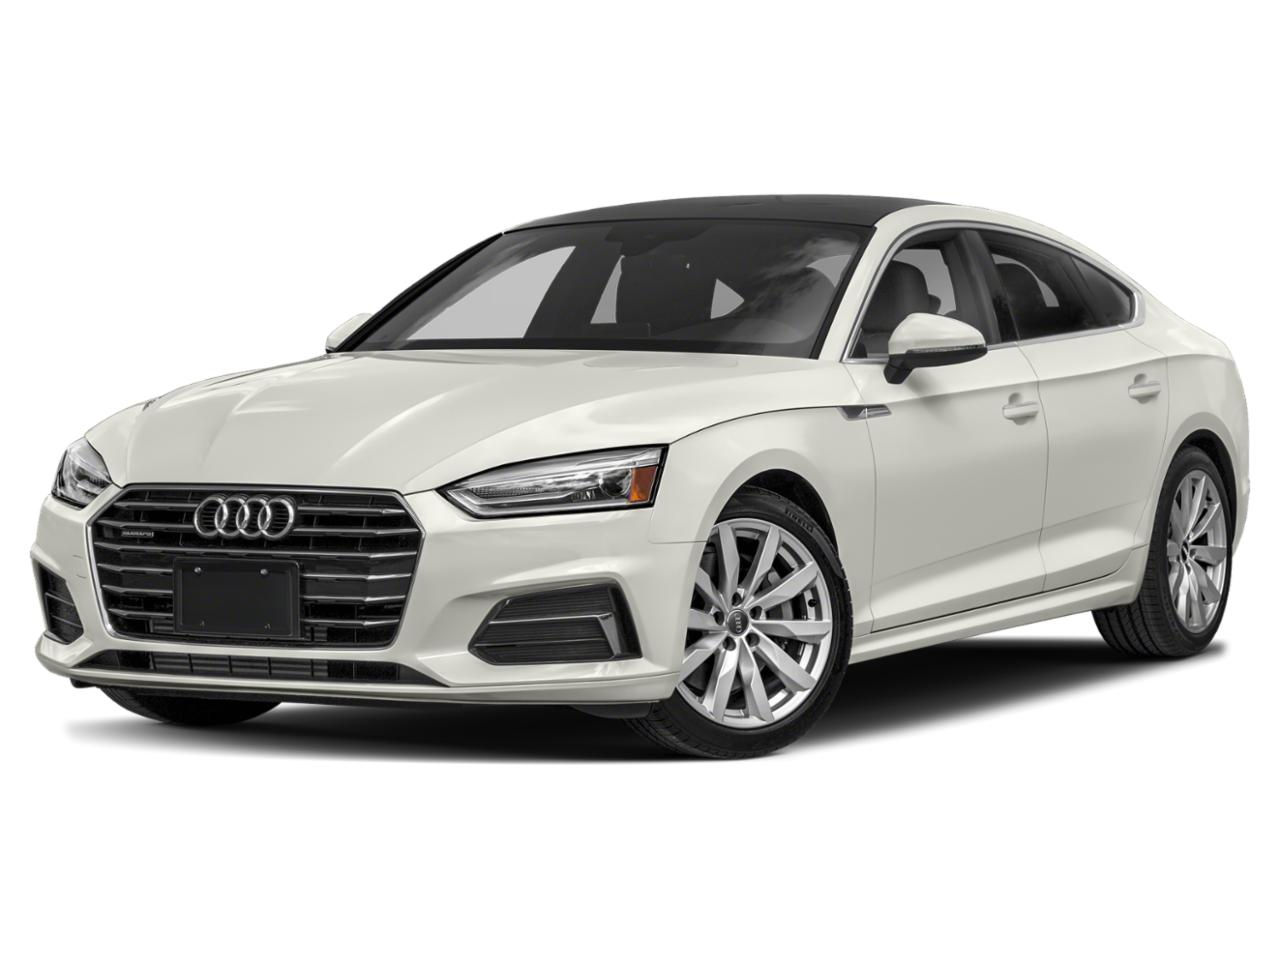 2018 Audi A5 Sportback Vehicle Photo in Allentown, PA 18103